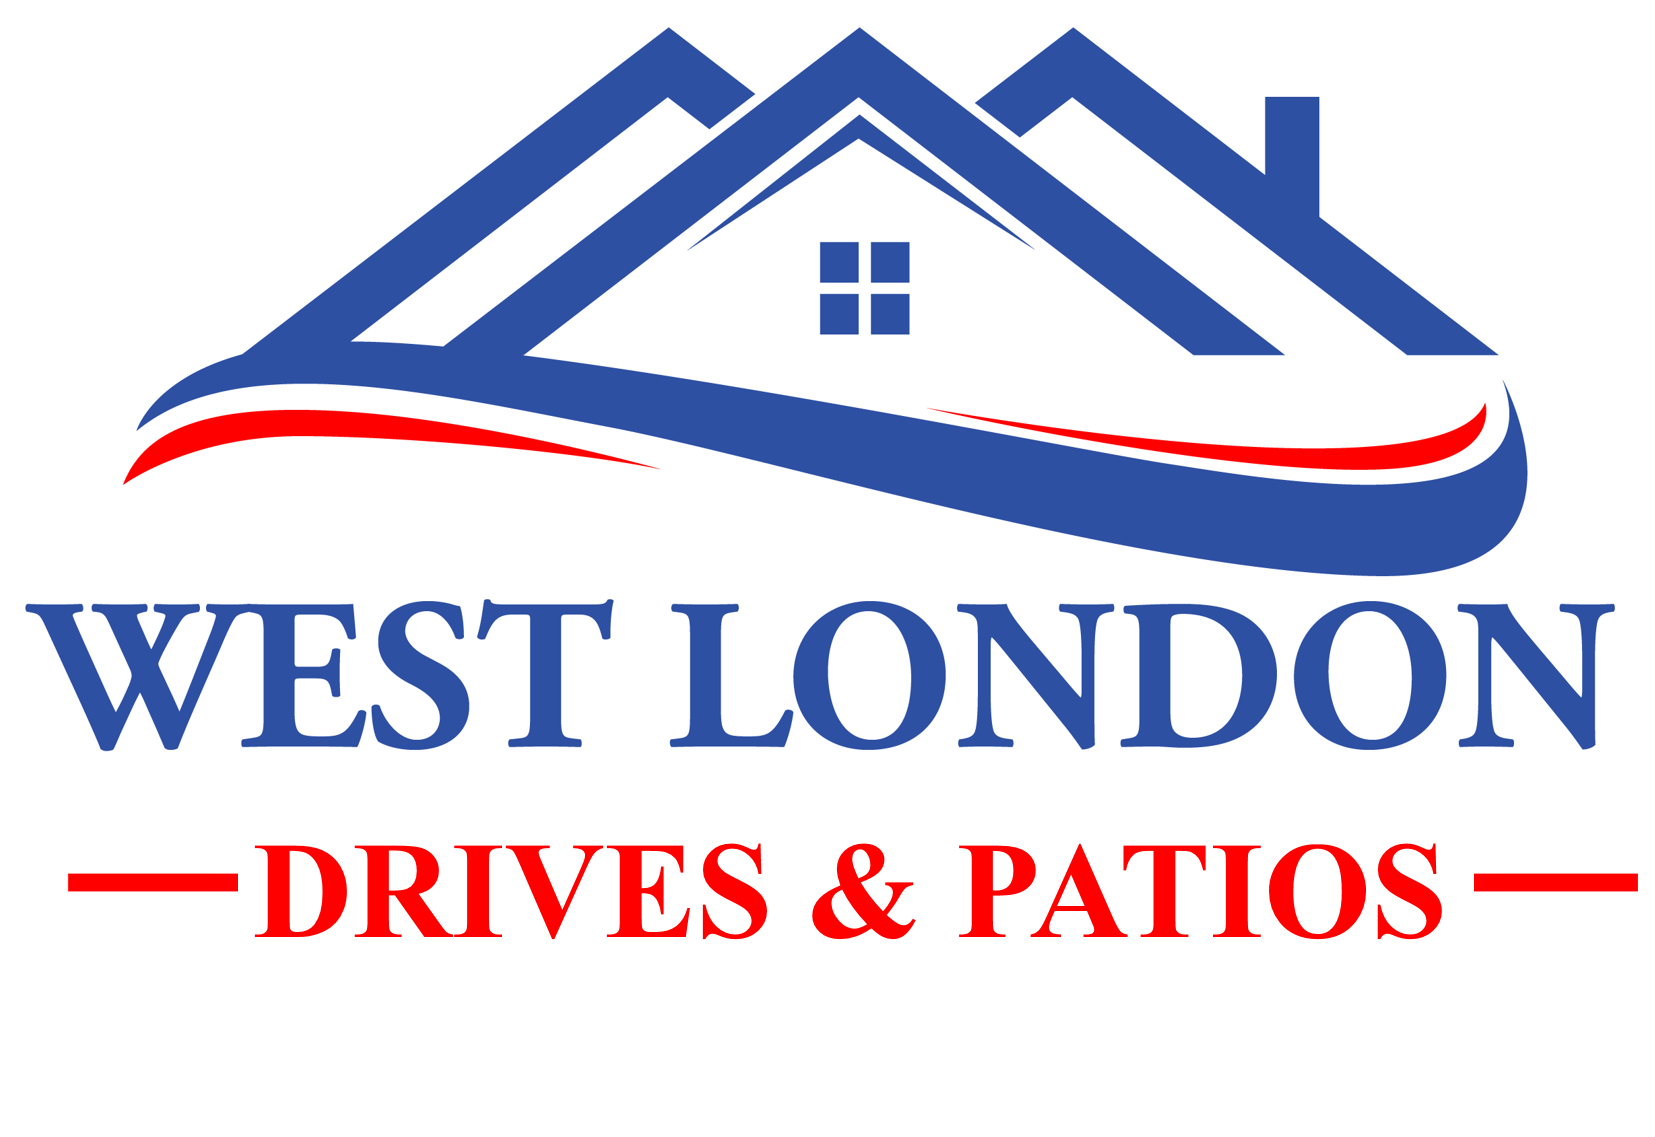 WEST LONDON DRIVES & PATIOS